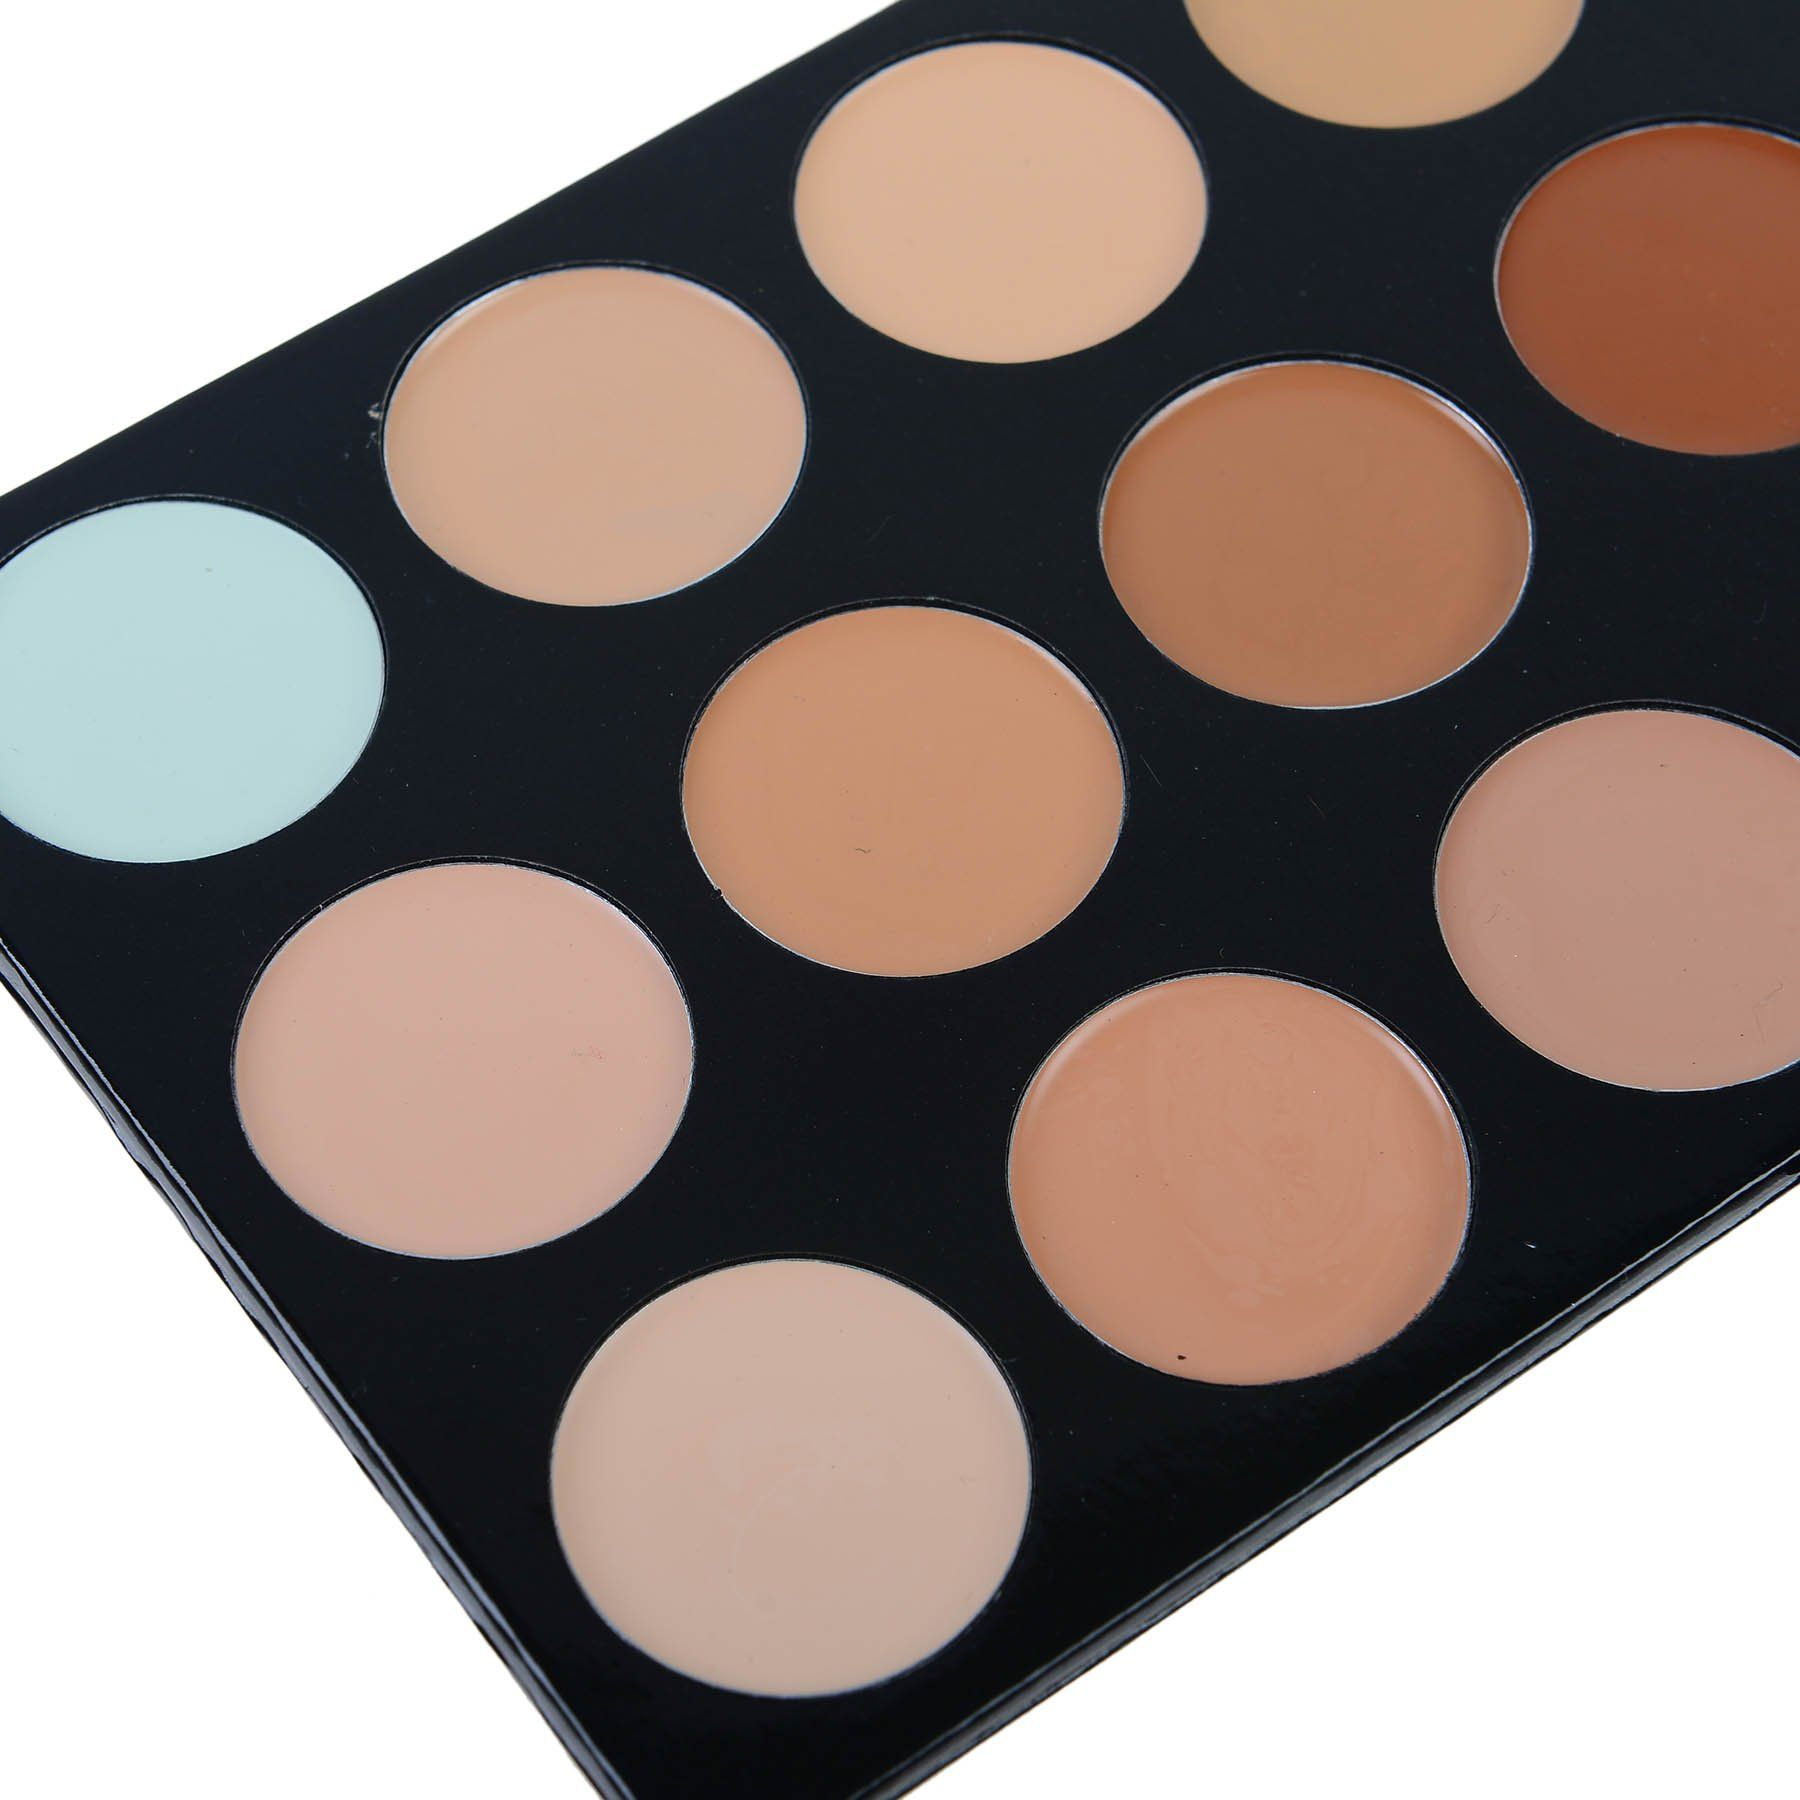 SHANY Masterpiece 15 Color Foundation Concealer Camouflage